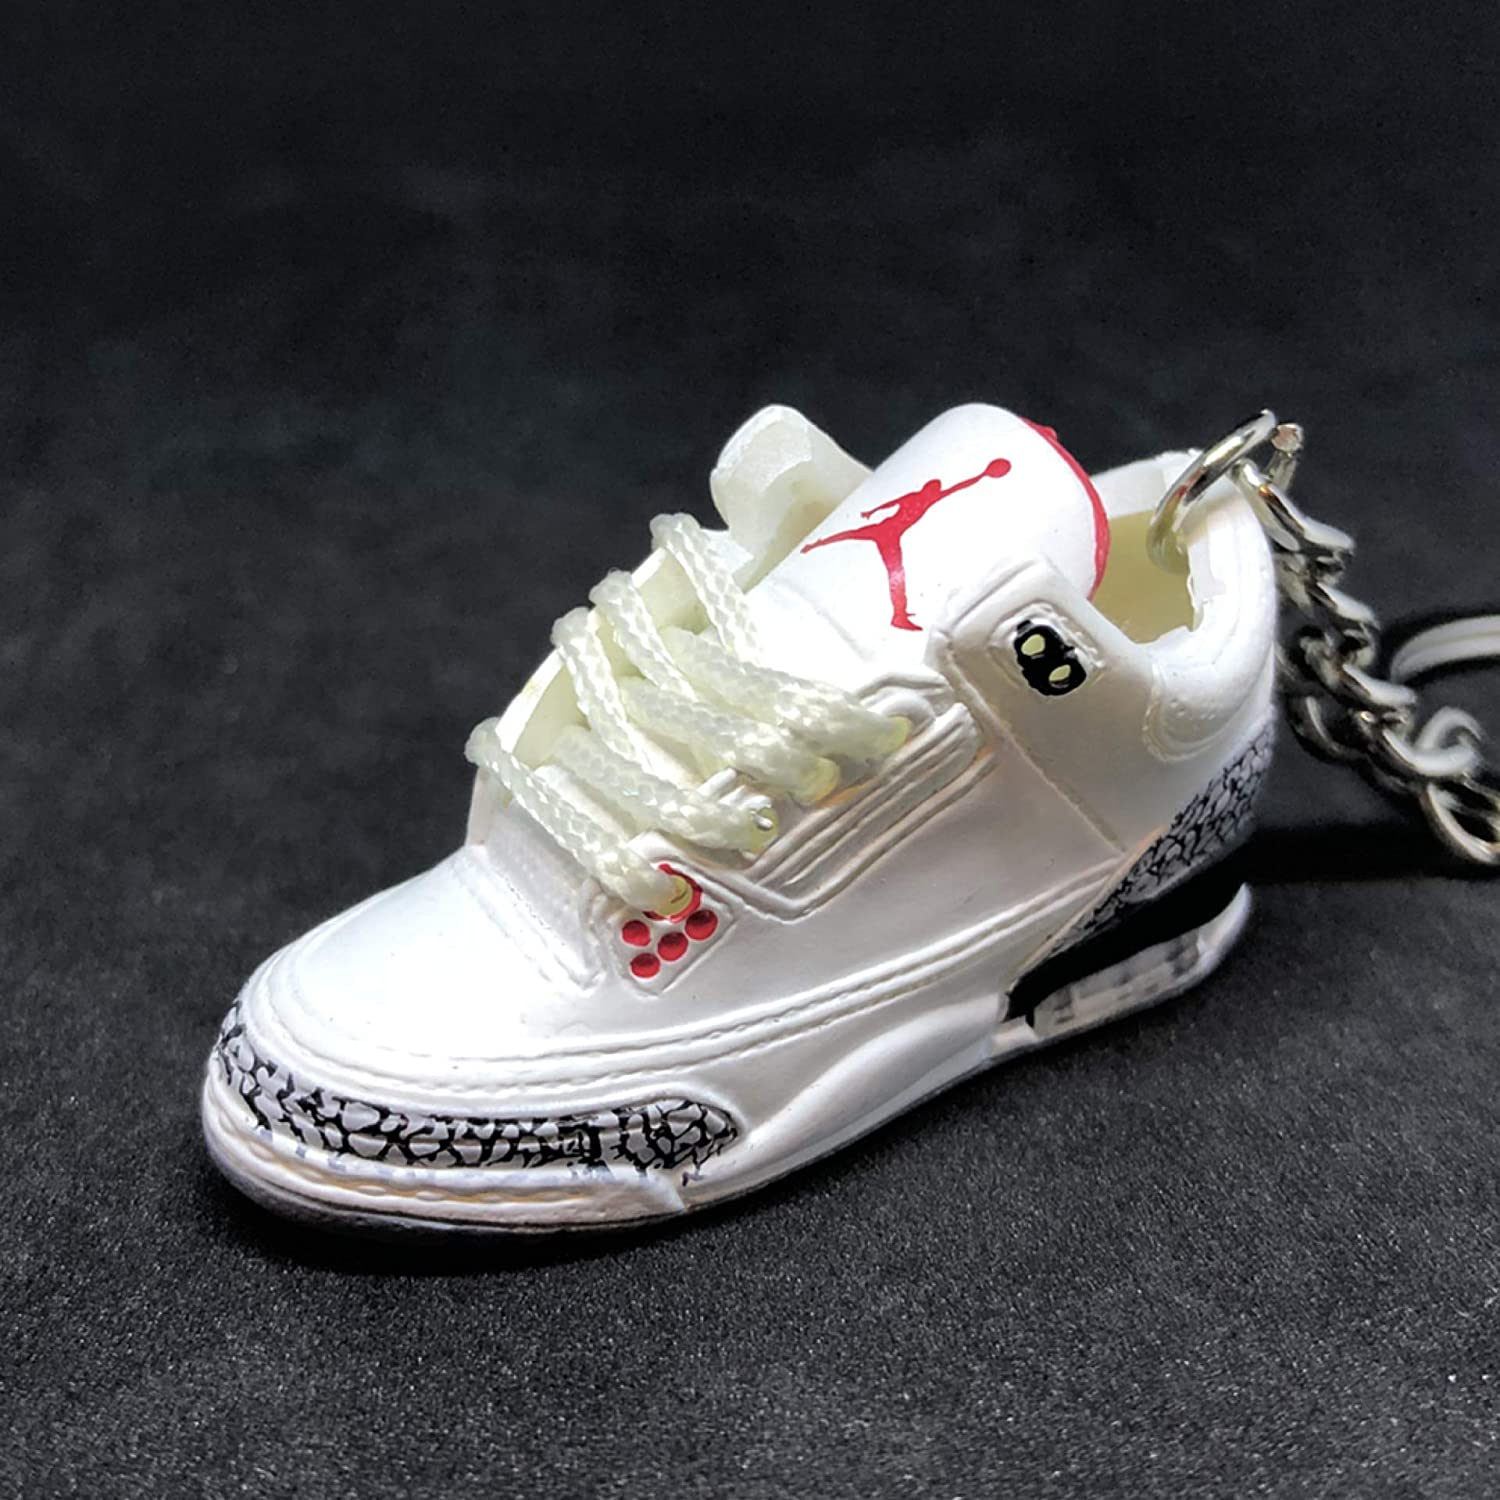 new styles a2b55 4e1f6 Air jordan III 3 Retro White Cement 88 OG Sneakers Shoes 3D Keychain